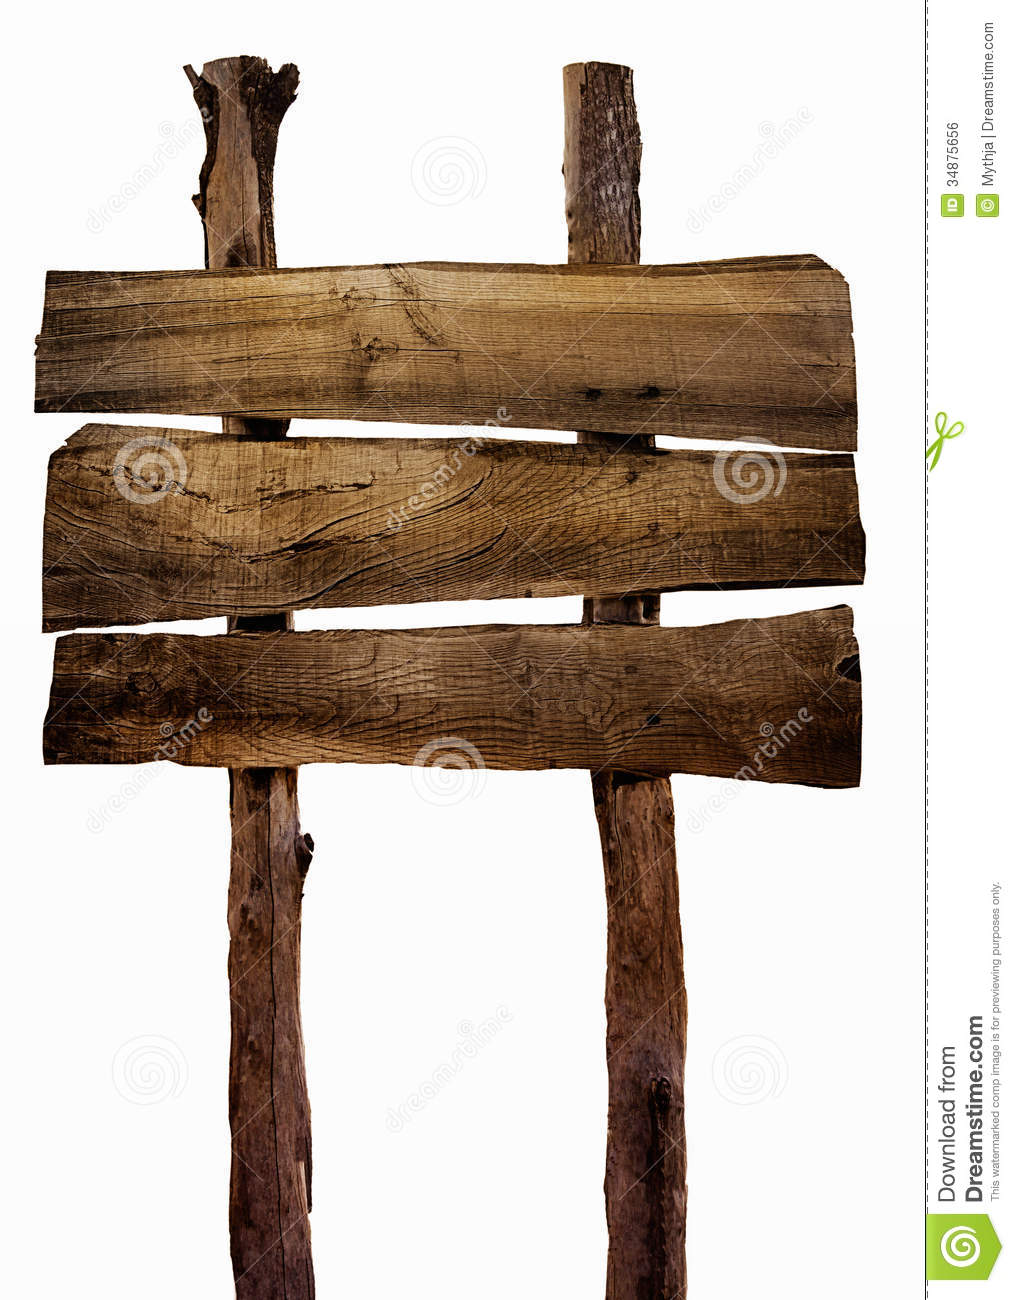 Wood Plank Sign : Wooden Sign Royalty Free Stock Image - Image: 34875656